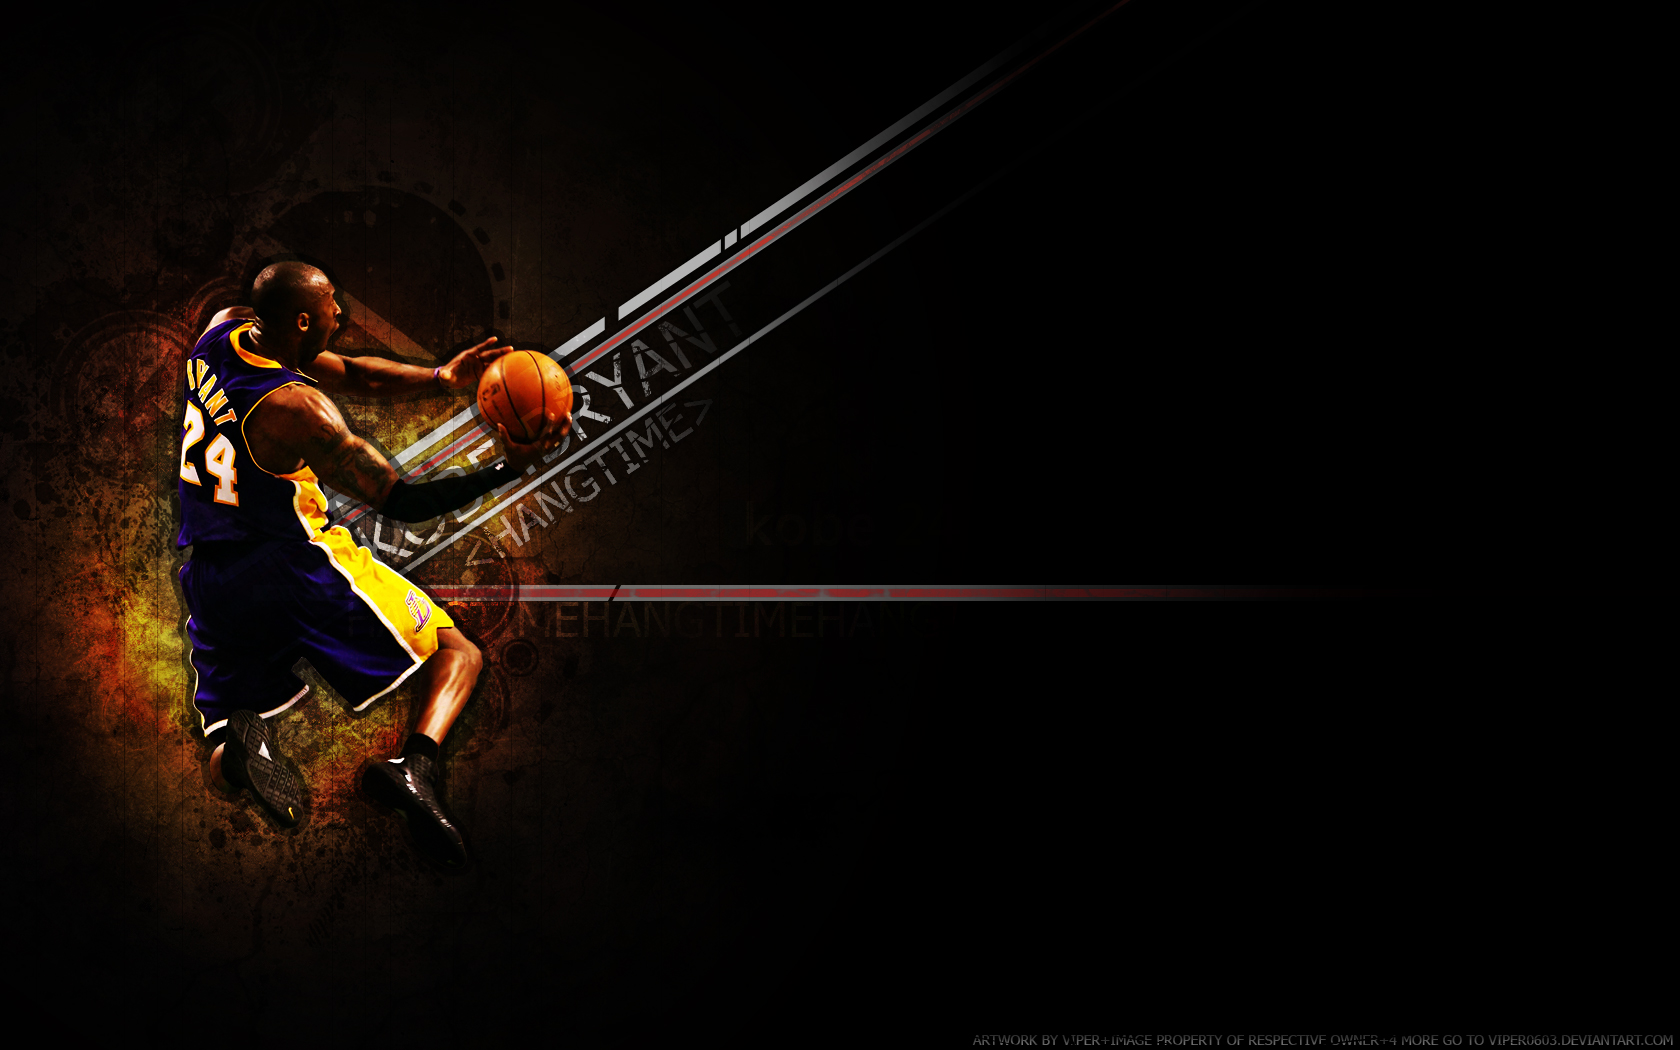 Nike Kobe Wallpaper wallpaper Nike Kobe Wallpaper hd wallpaper 1680x1050